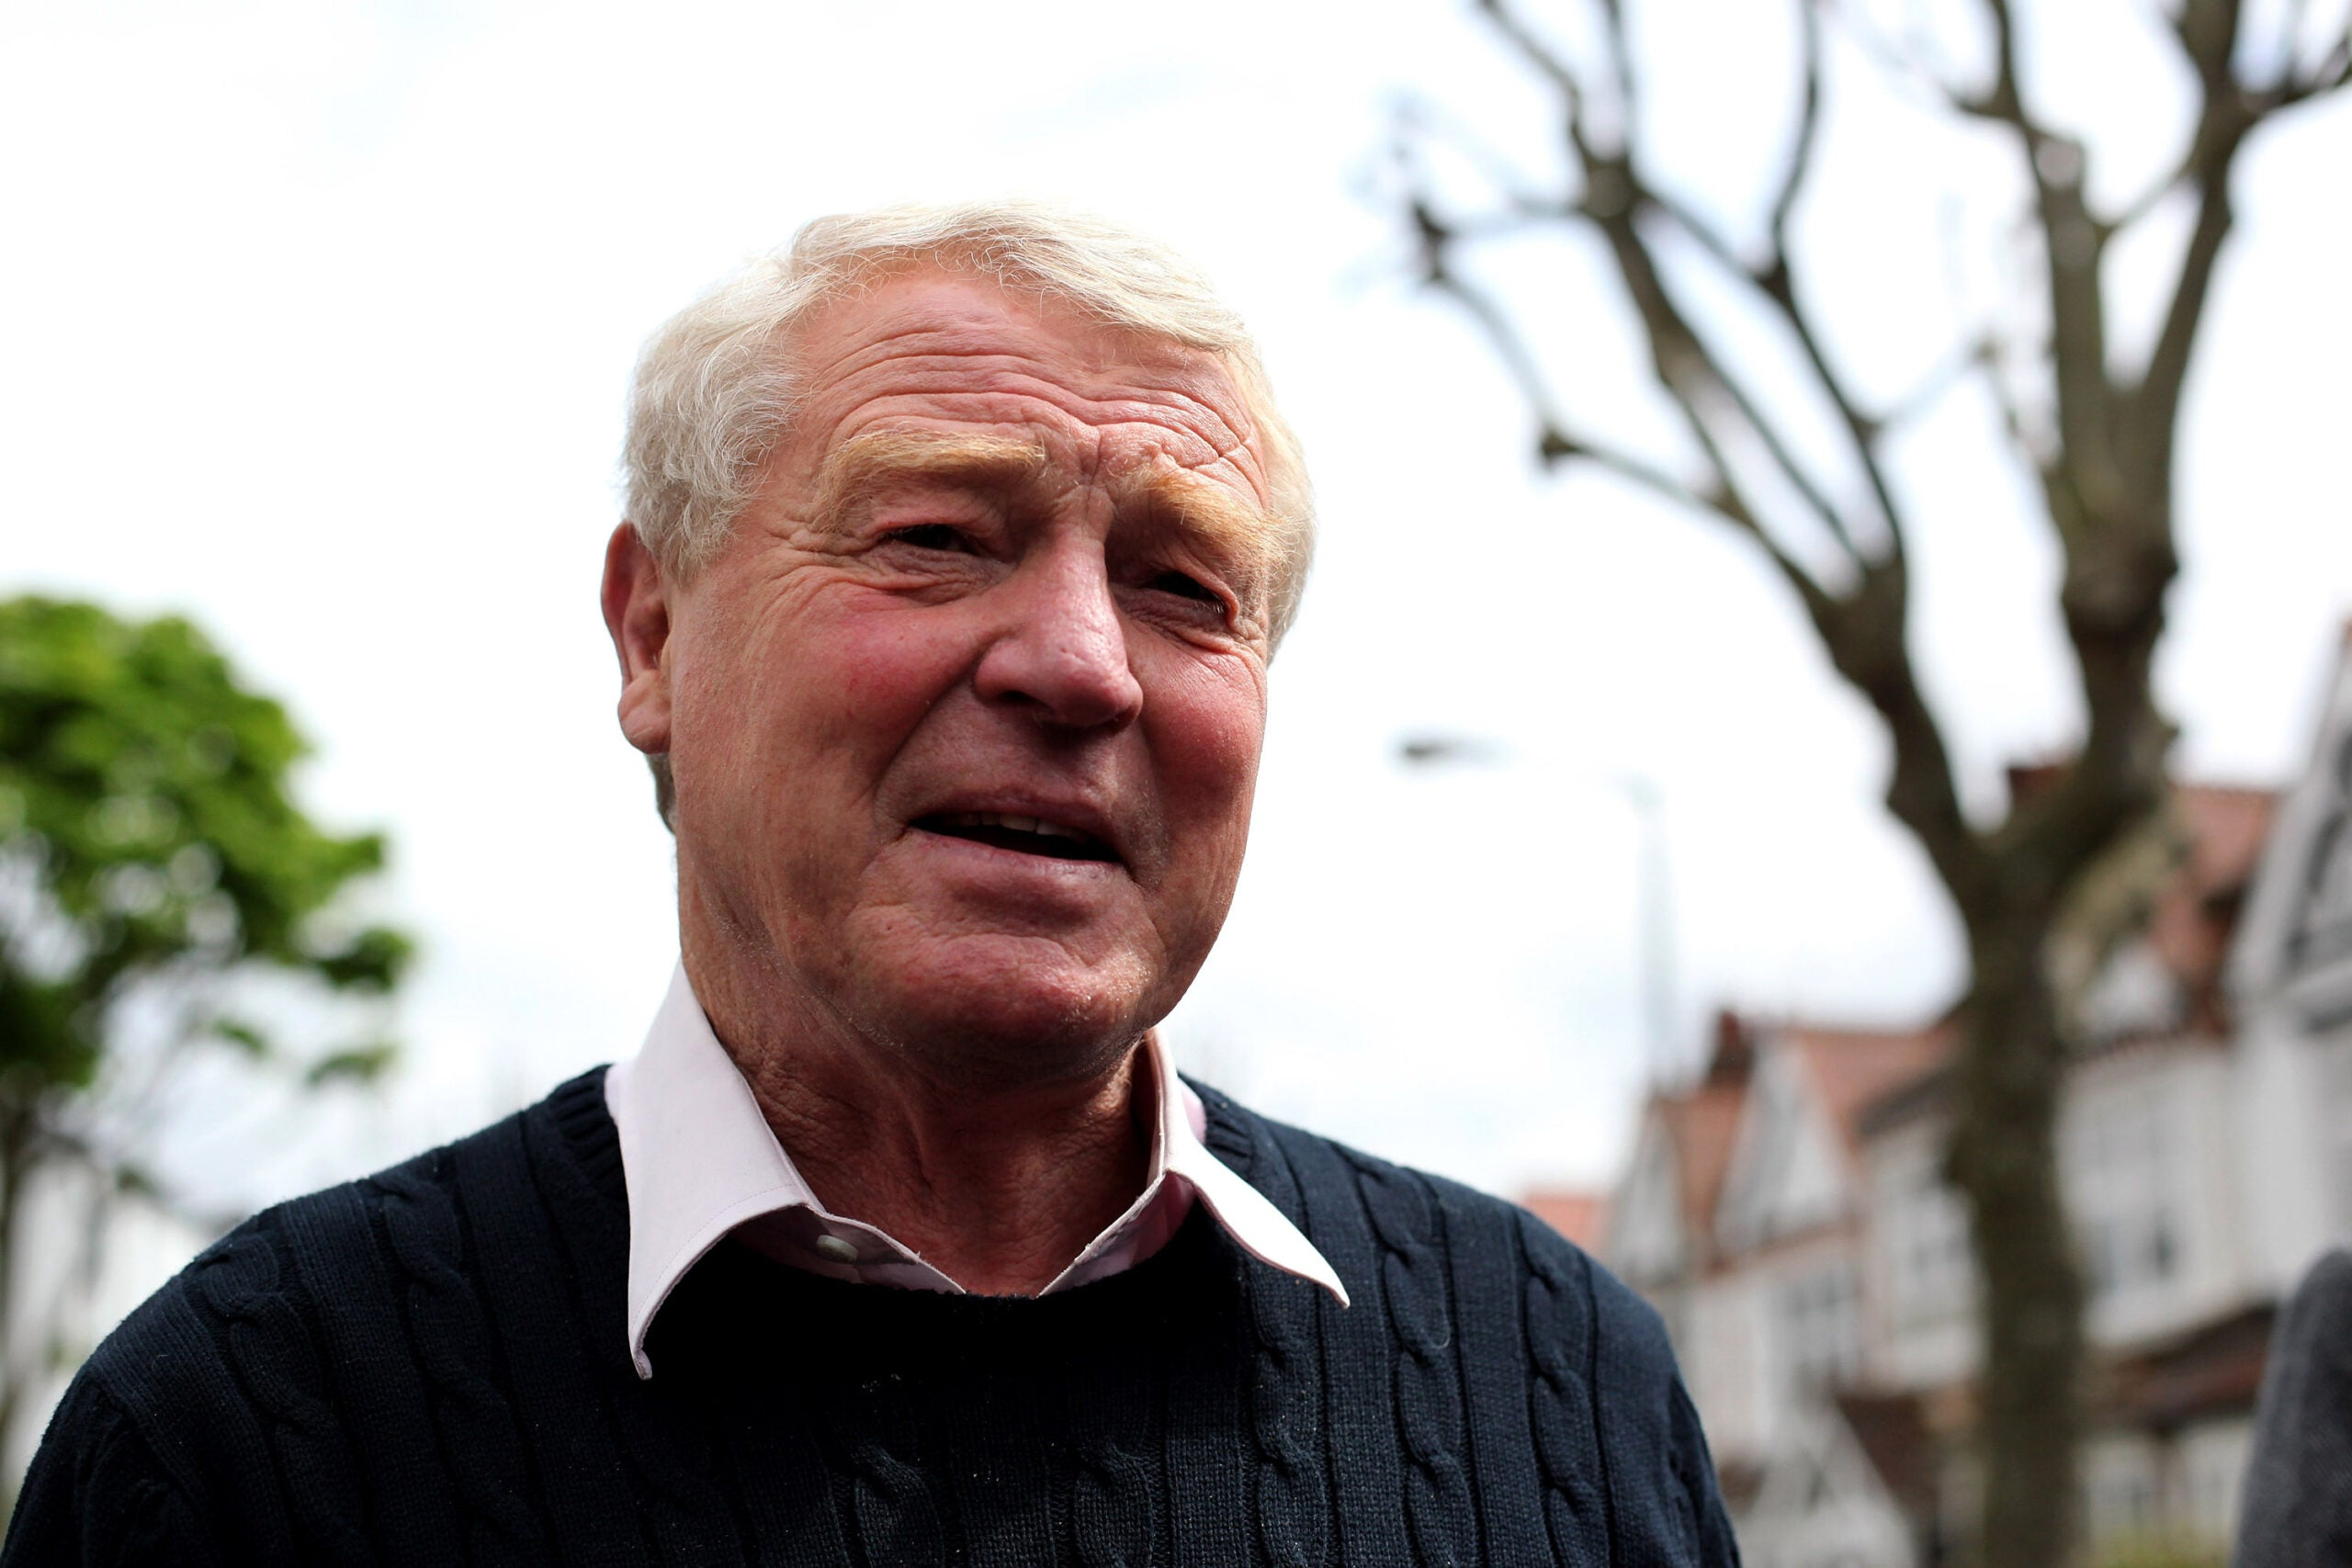 Paddy Ashdown leaves behind a legacy of profound decency and kindness